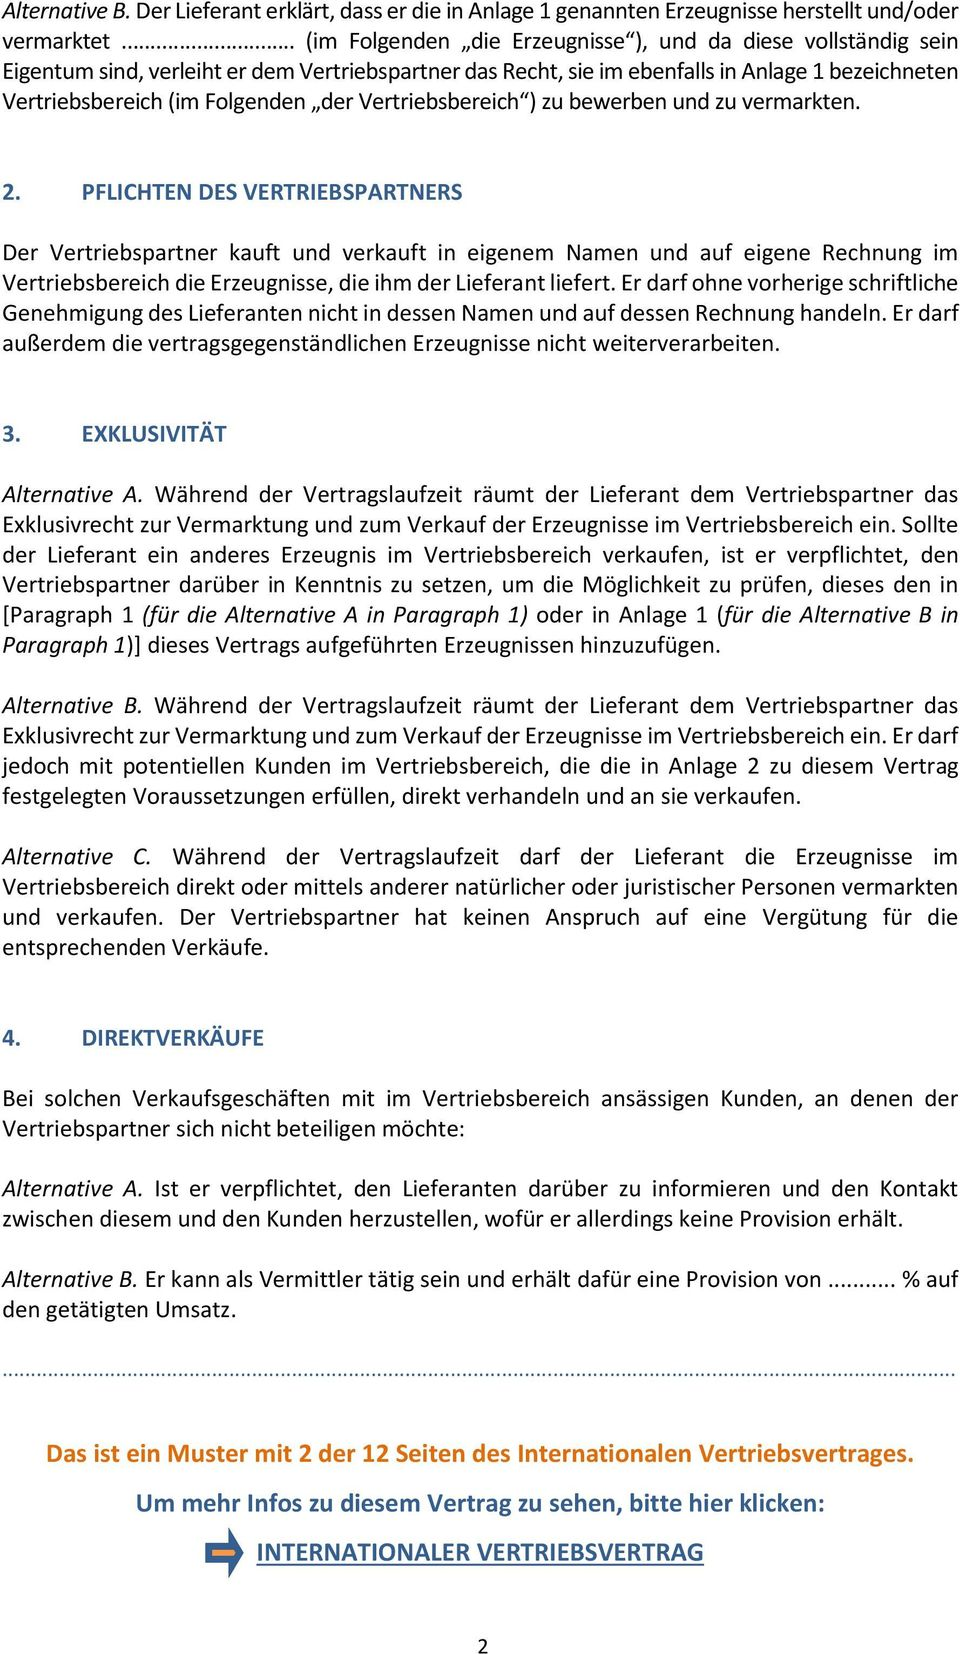 INTERNATIONALER VERTRIEBSVERTRAG MUSTER - PDF